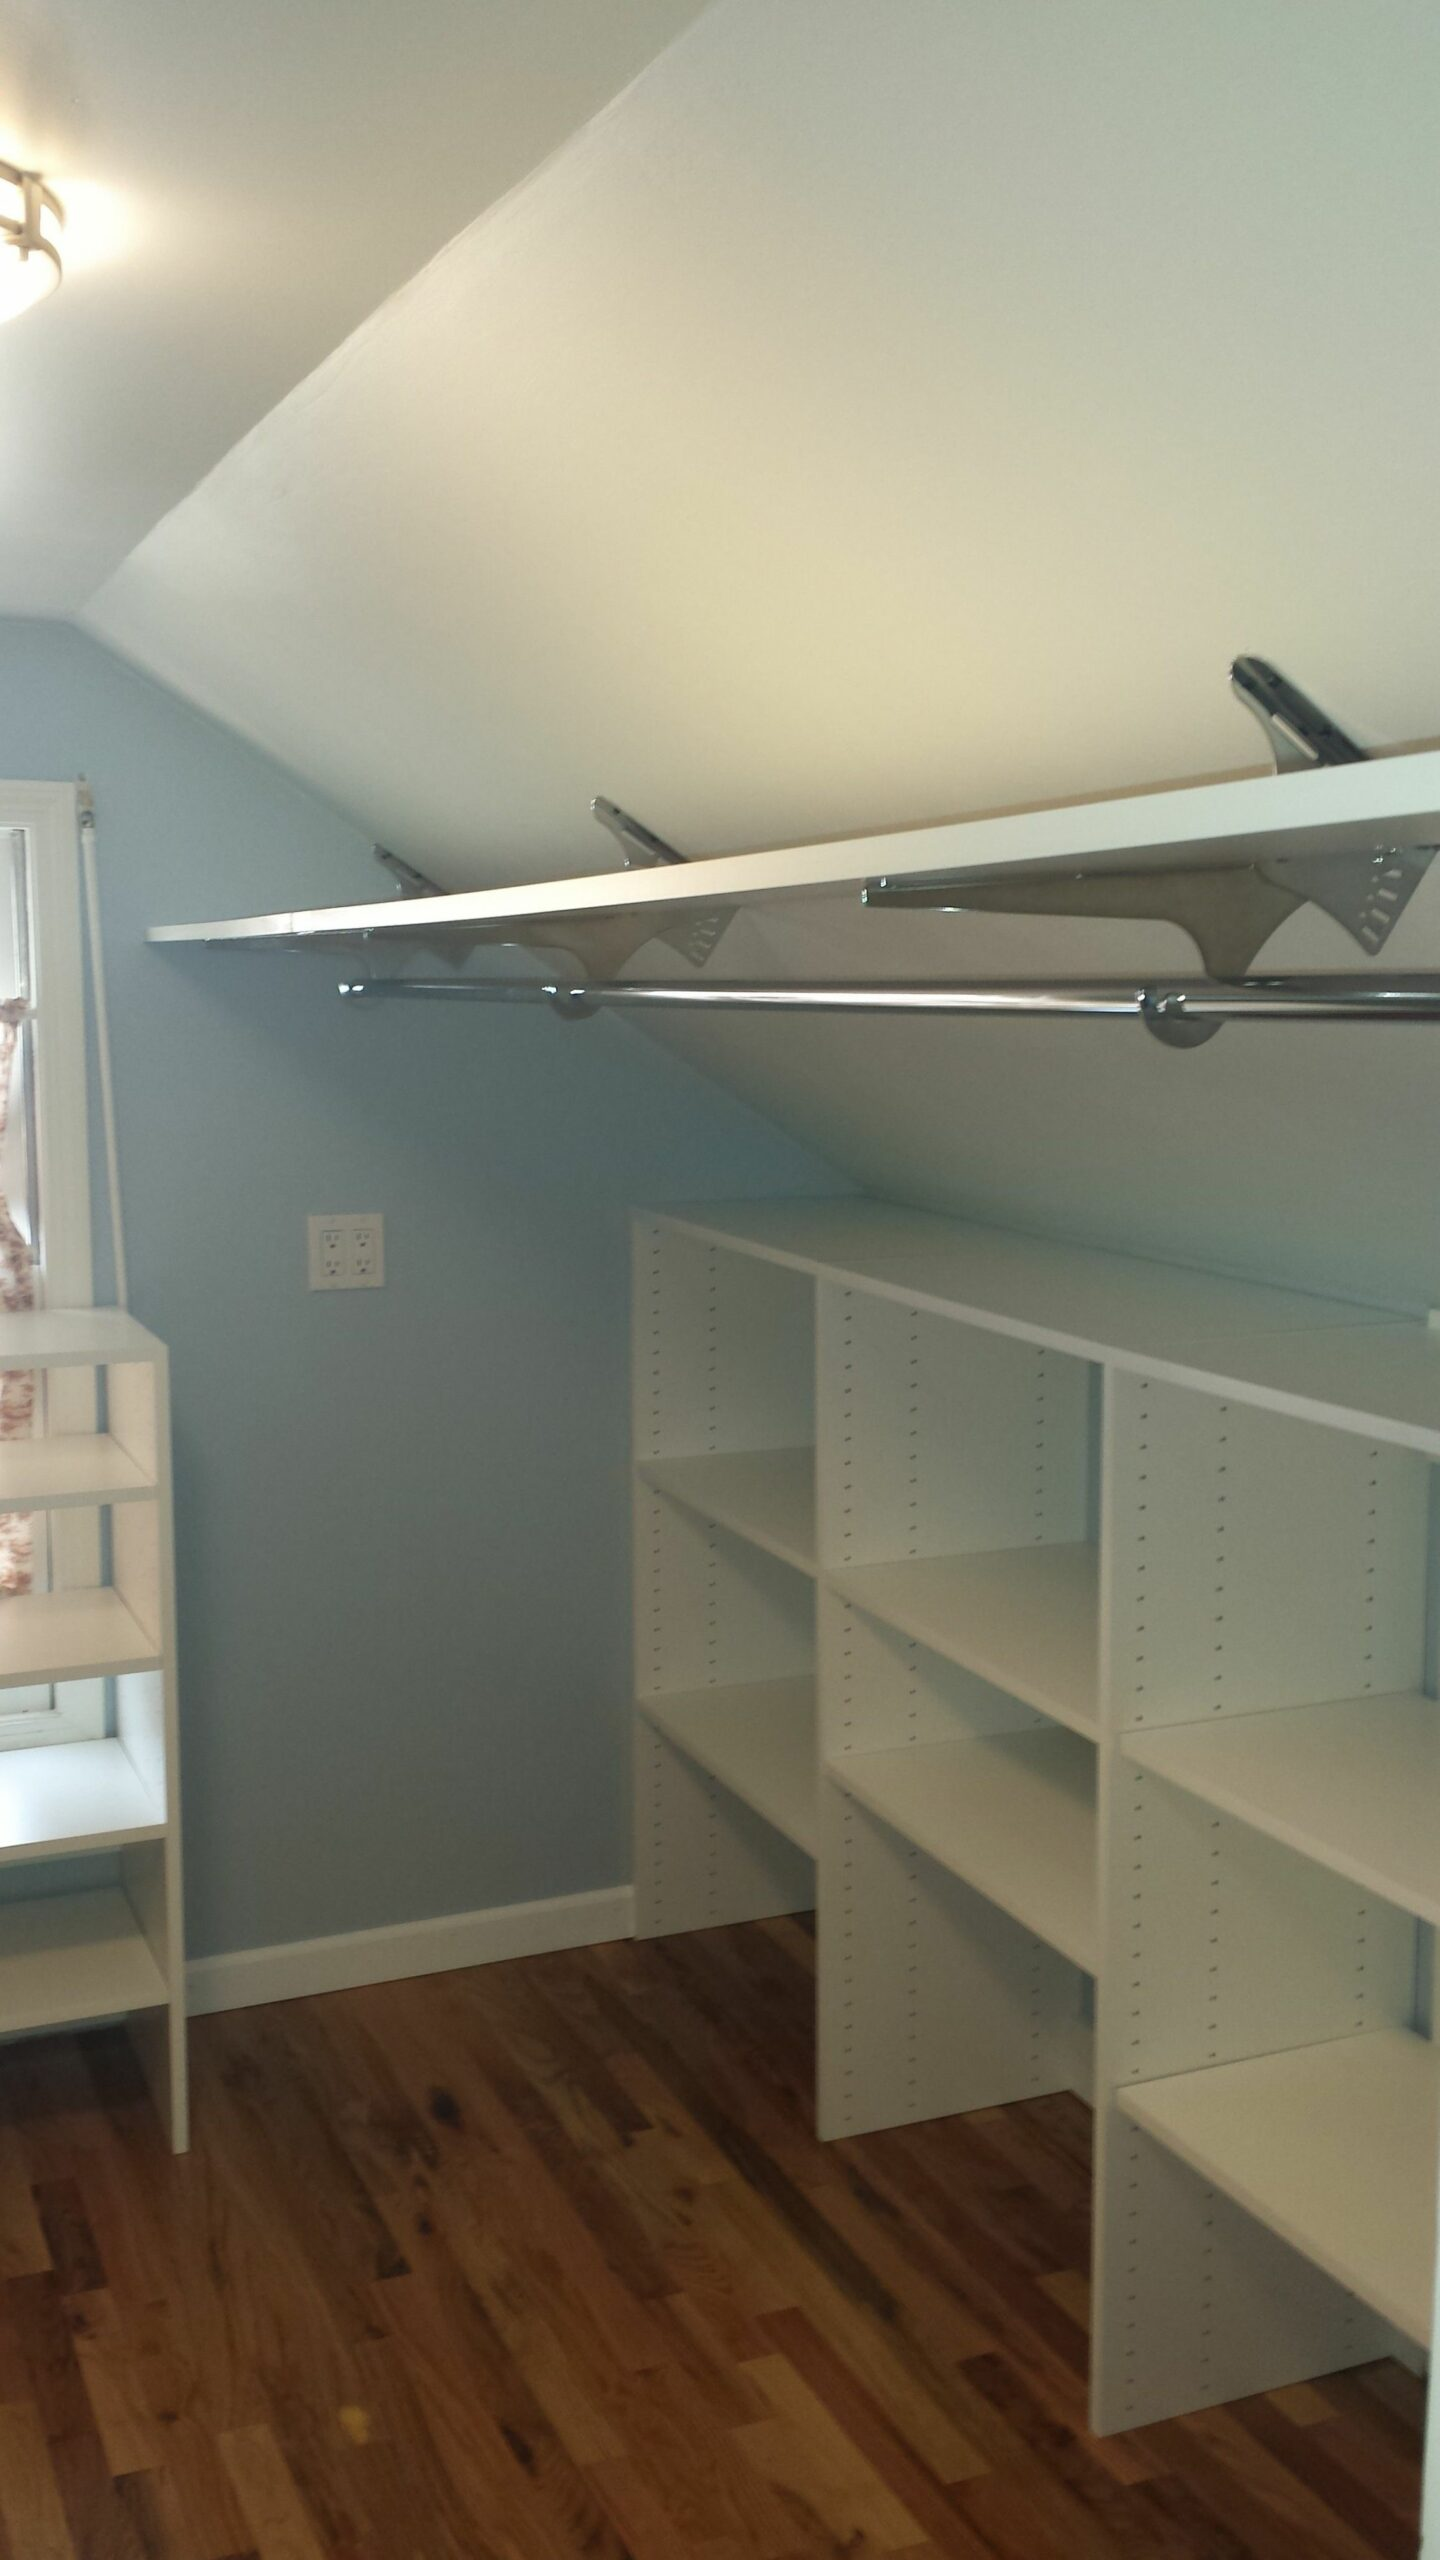 Angled brackets used to maximize space in attic closet. | Attic ...